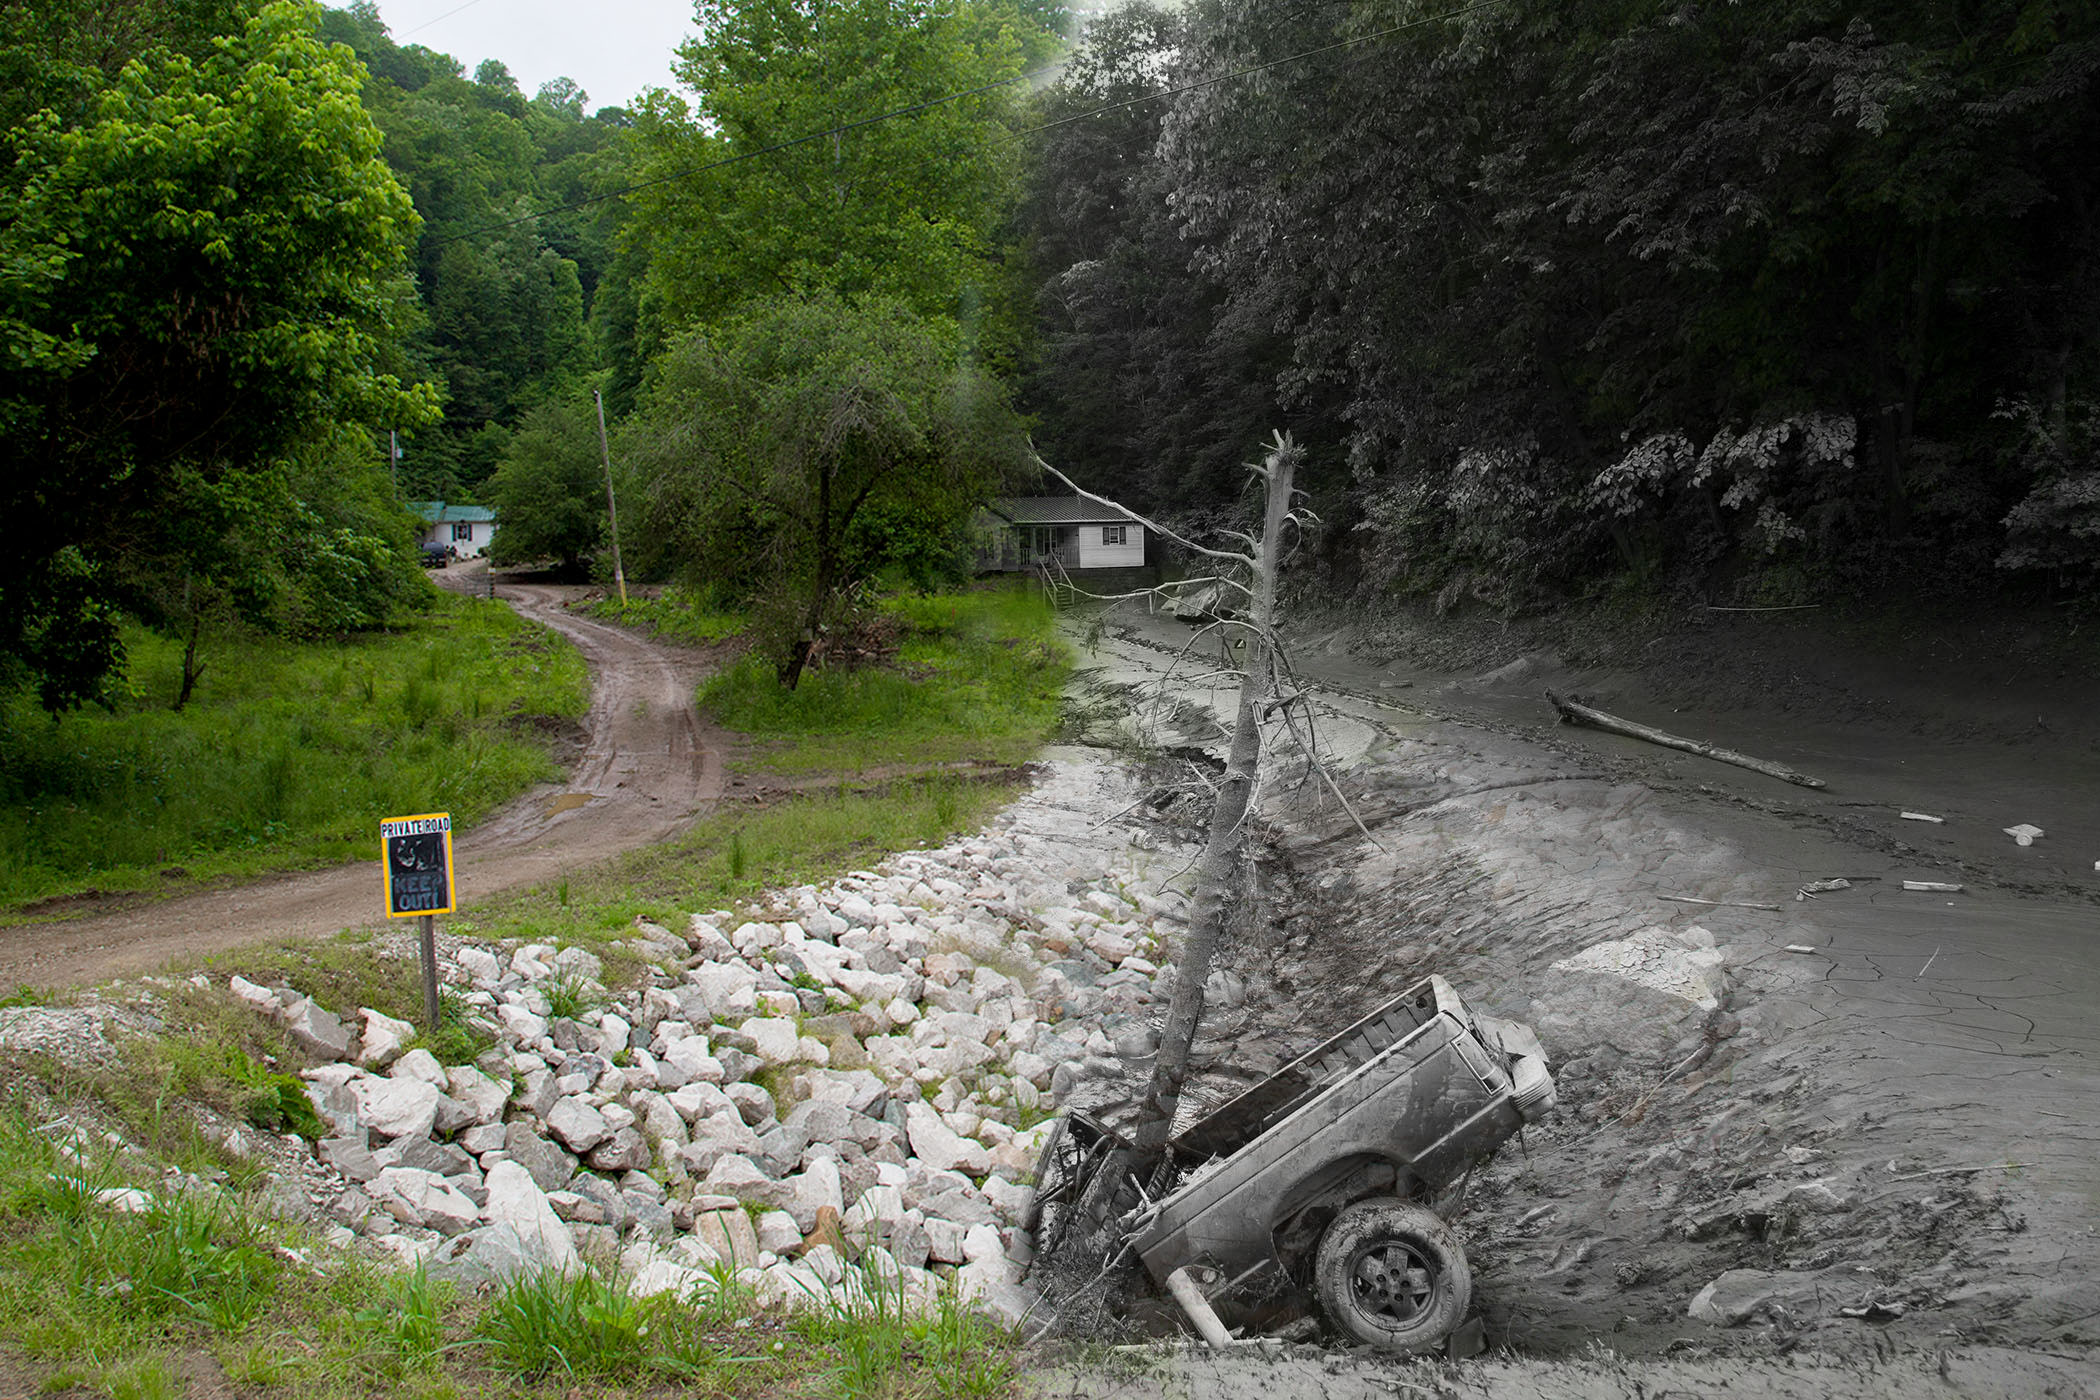 Photos of flood damage from 2016 (right) and recovery today (left) in Clendenin, West Virginia. (CREDIT: Photos by Kara Lofton, illustration by Jesse Wright, WVPB)